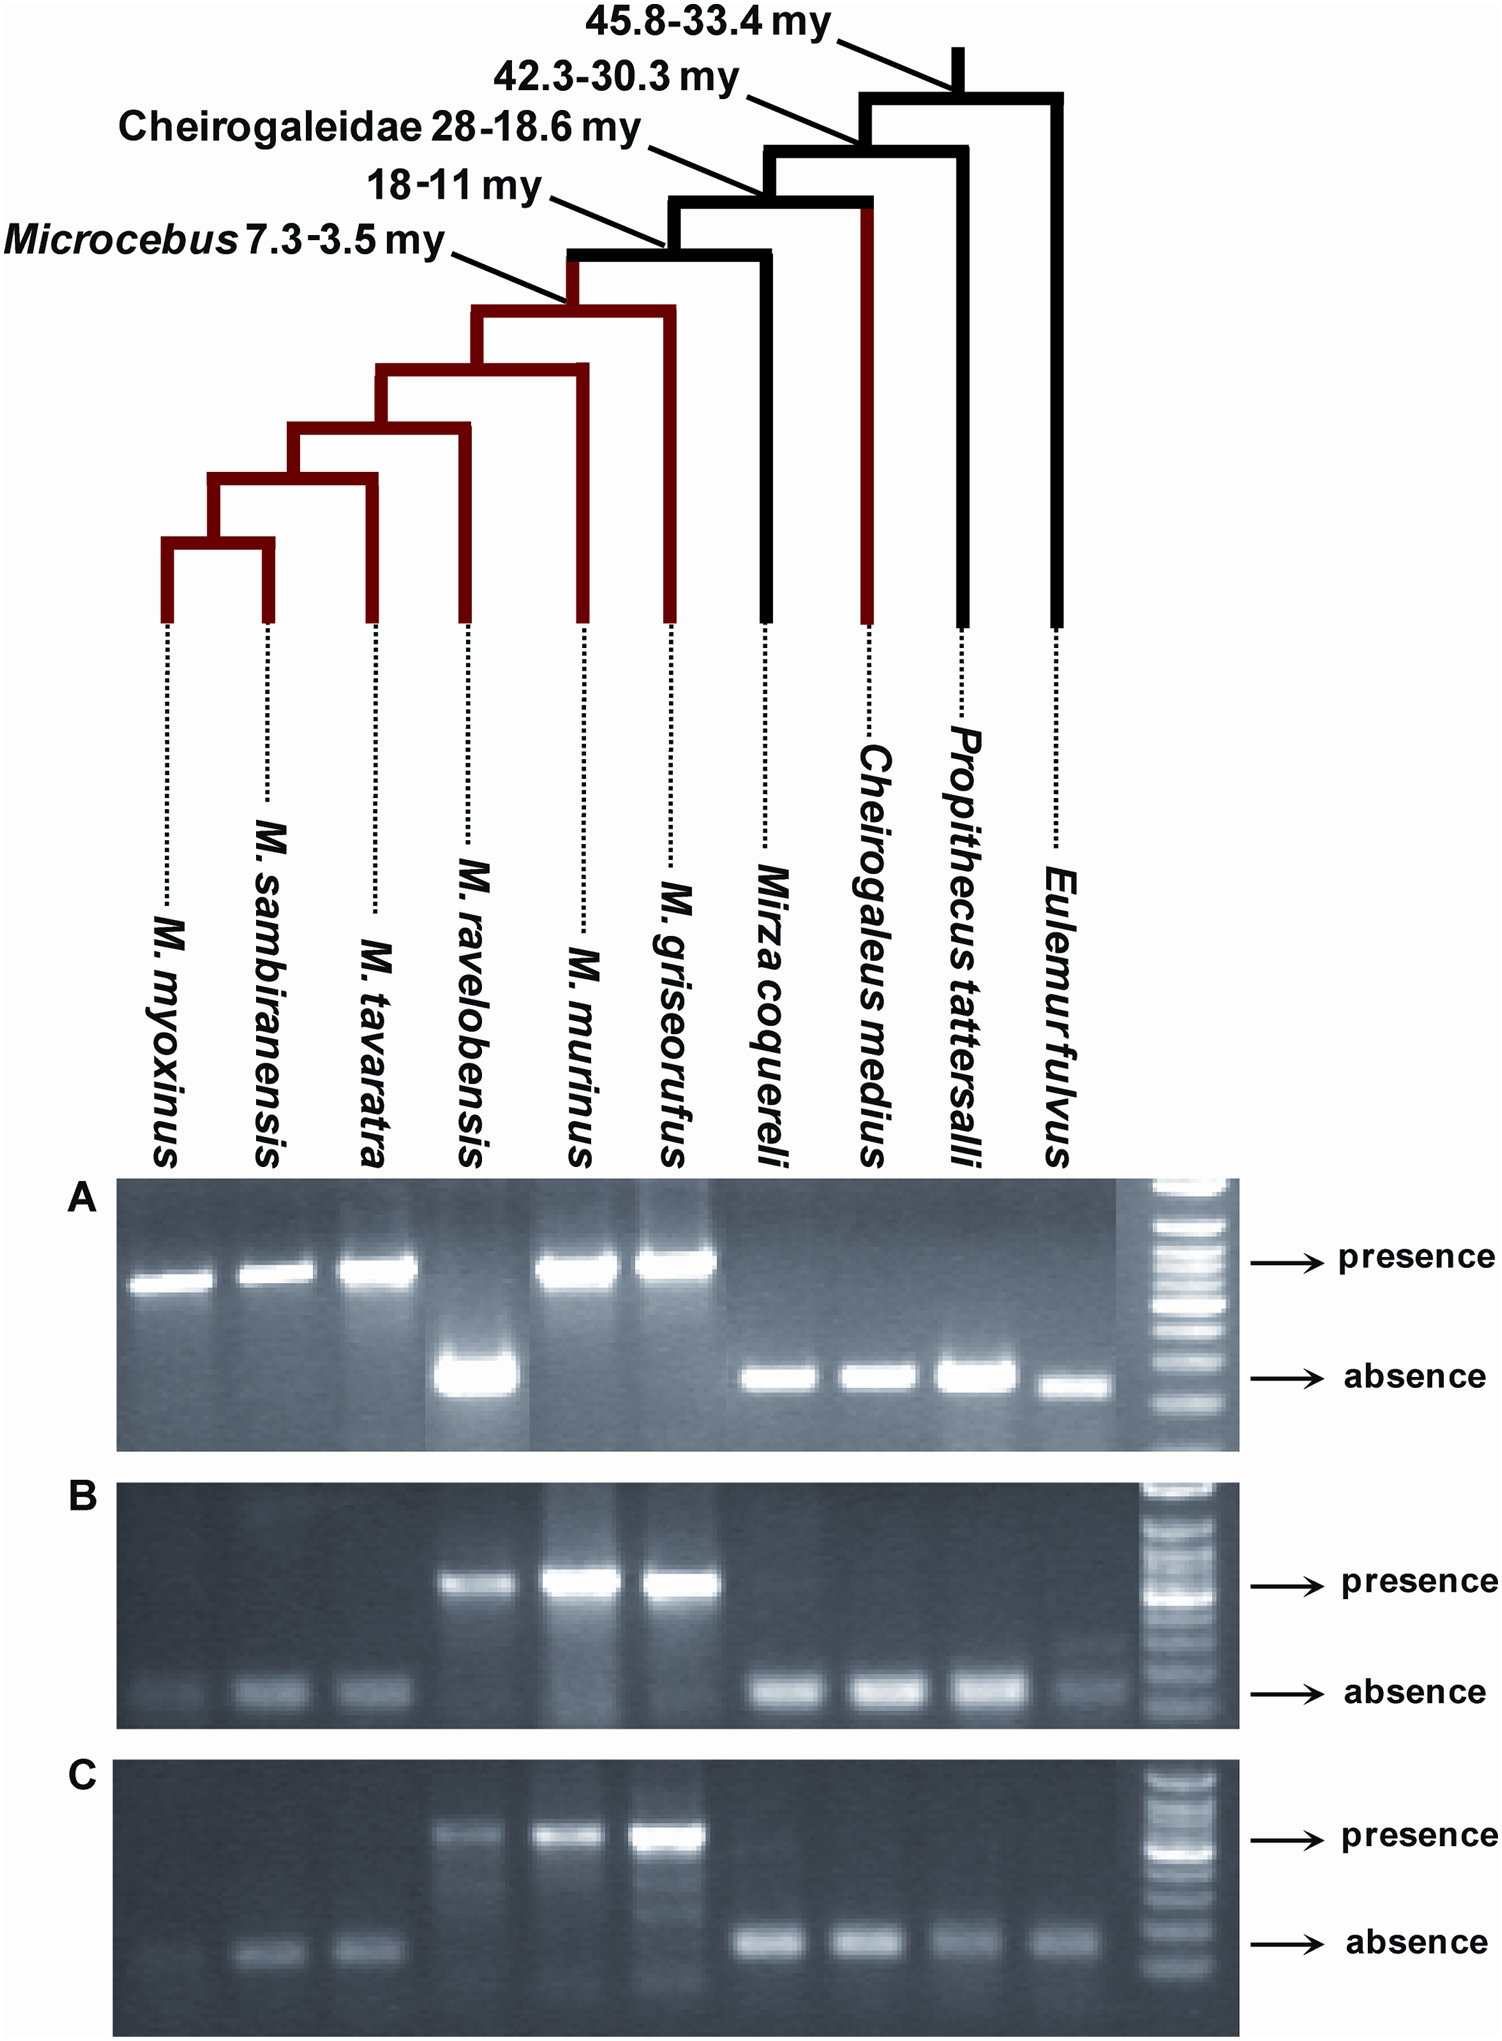 PCR screening for presence/absence of orthologous solo LTR in various species of Malagasy lemurs.